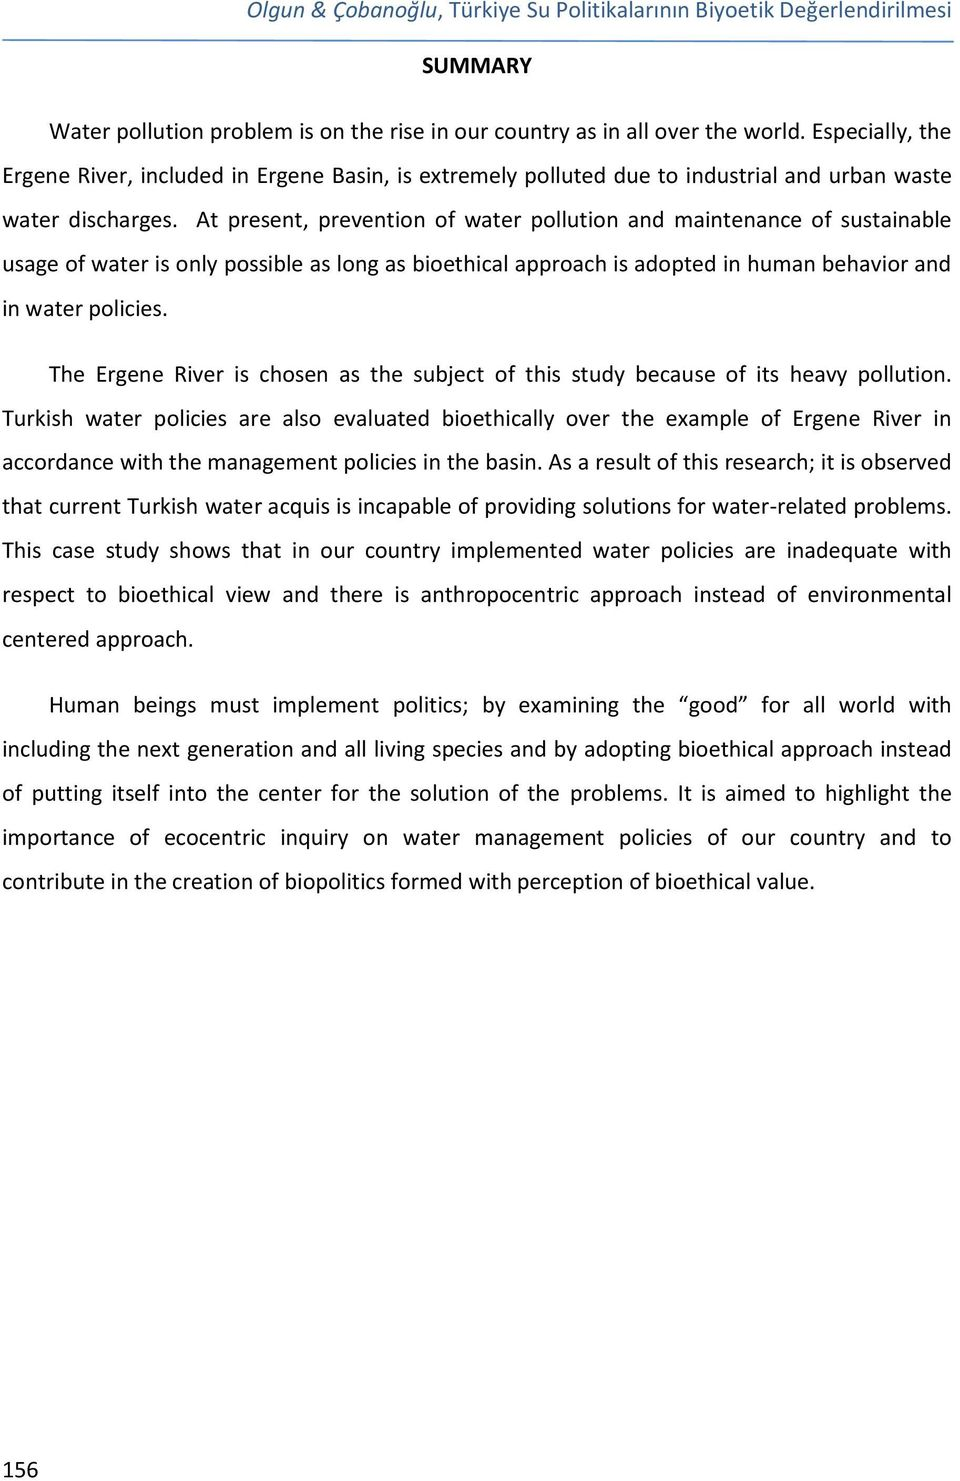 At present, prevention of water pollution and maintenance of sustainable usage of water is only possible as long as bioethical approach is adopted in human behavior and in water policies.